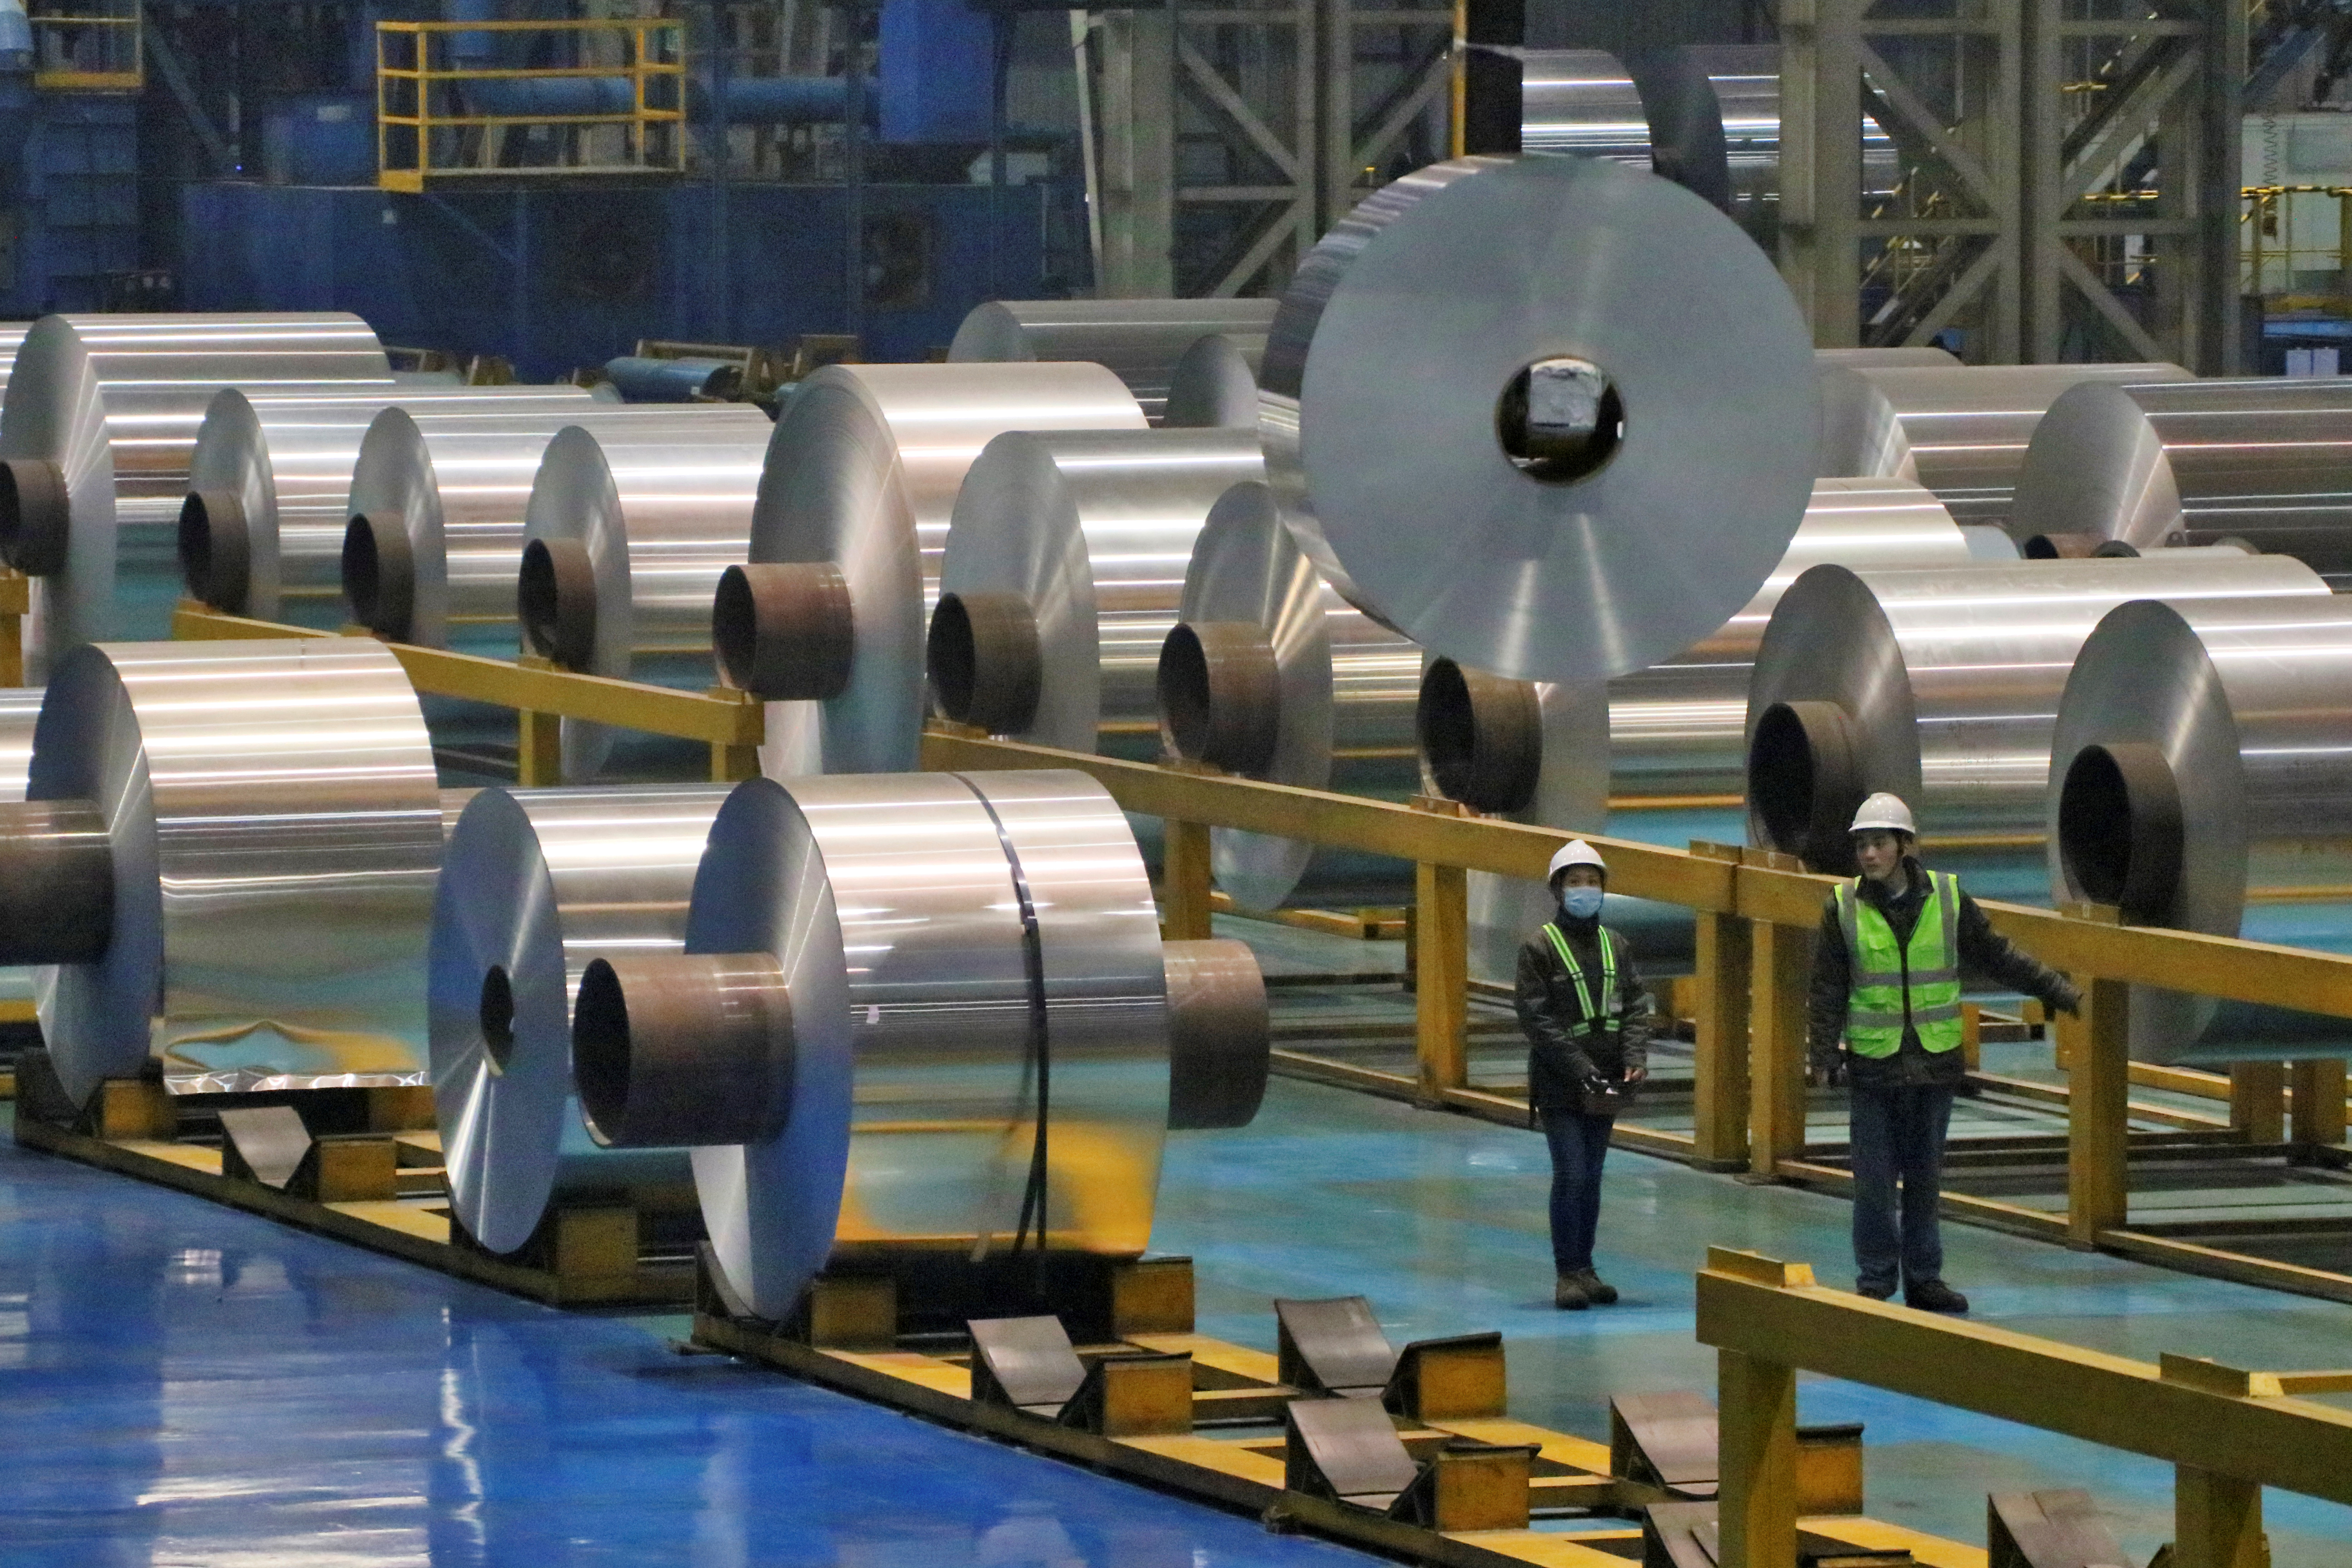 Employees work at the production line of aluminium rolls at a factory in Zouping, Shandong province, China November 23, 2019. REUTERS/Stringer